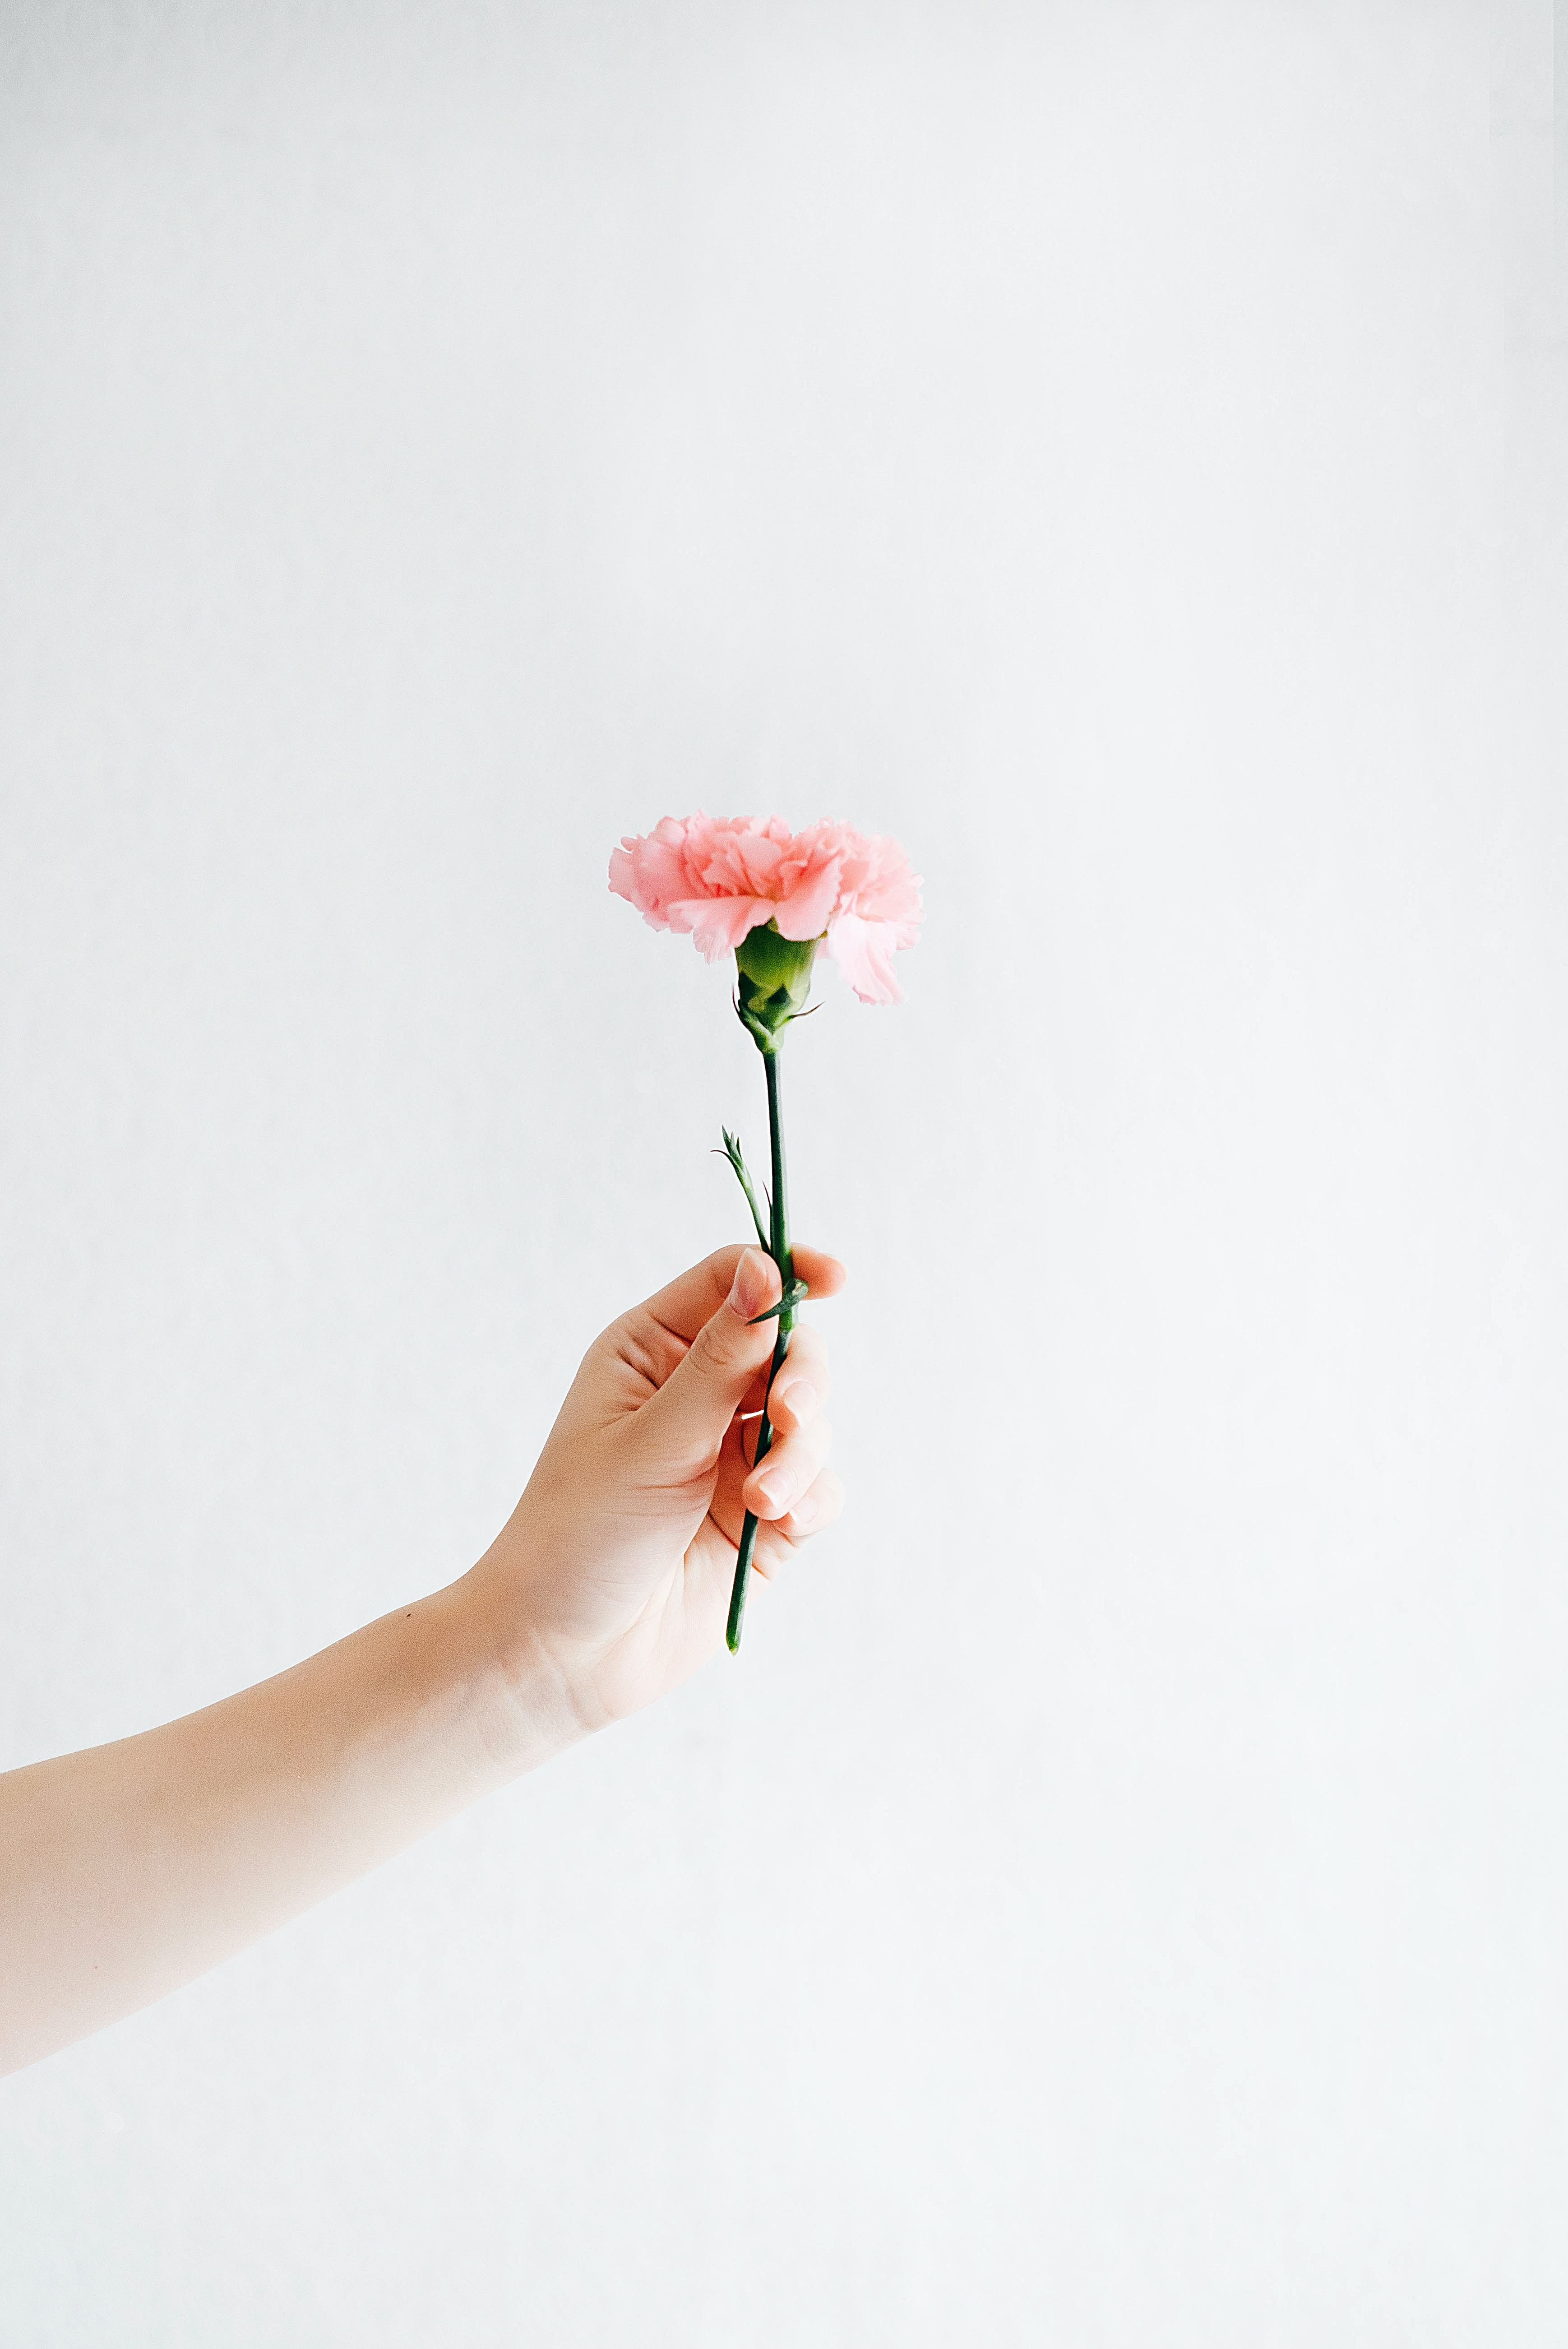 A person holding a flower up.